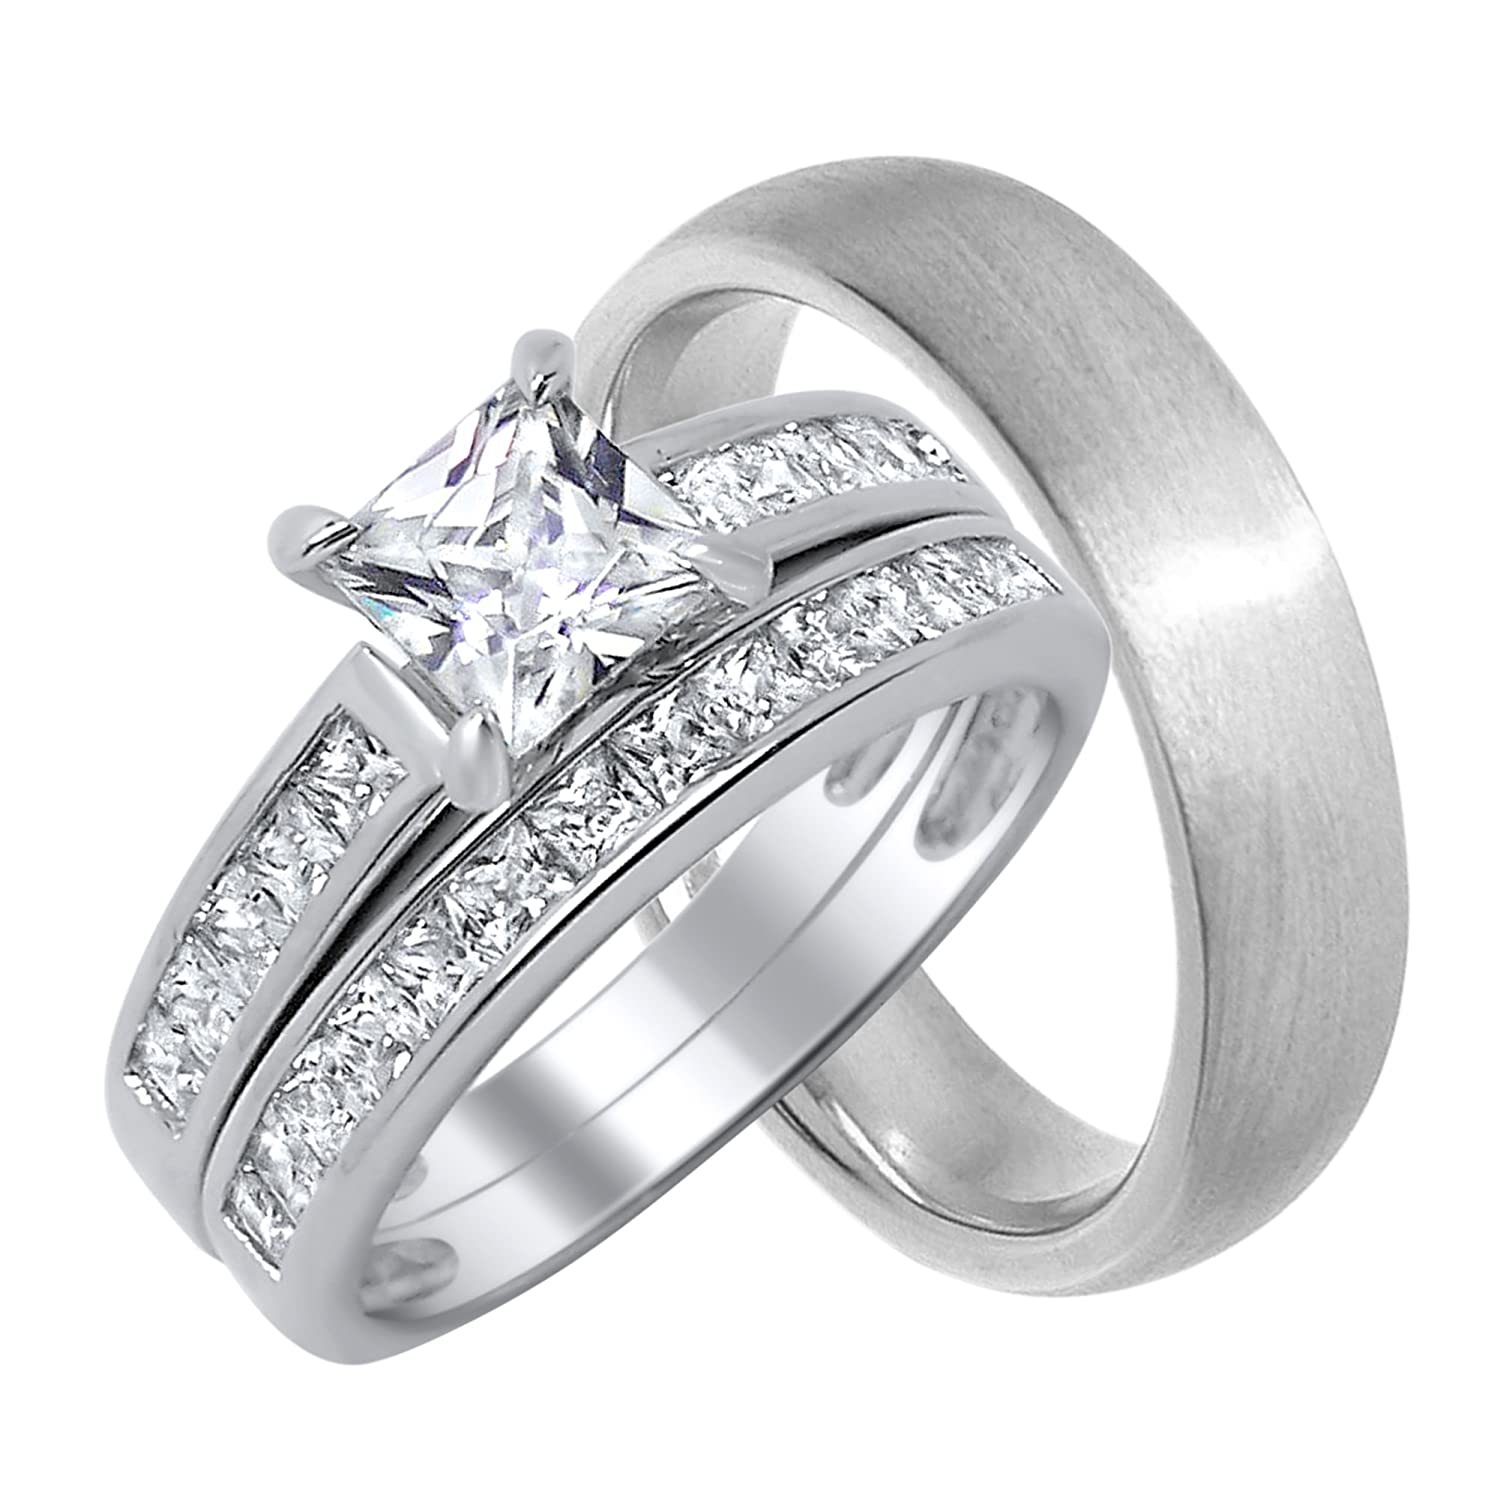 6d4deb4ba07c4 His and Her Wedding Ring Set Matching Bands for Him and Her (Choose Sizes)